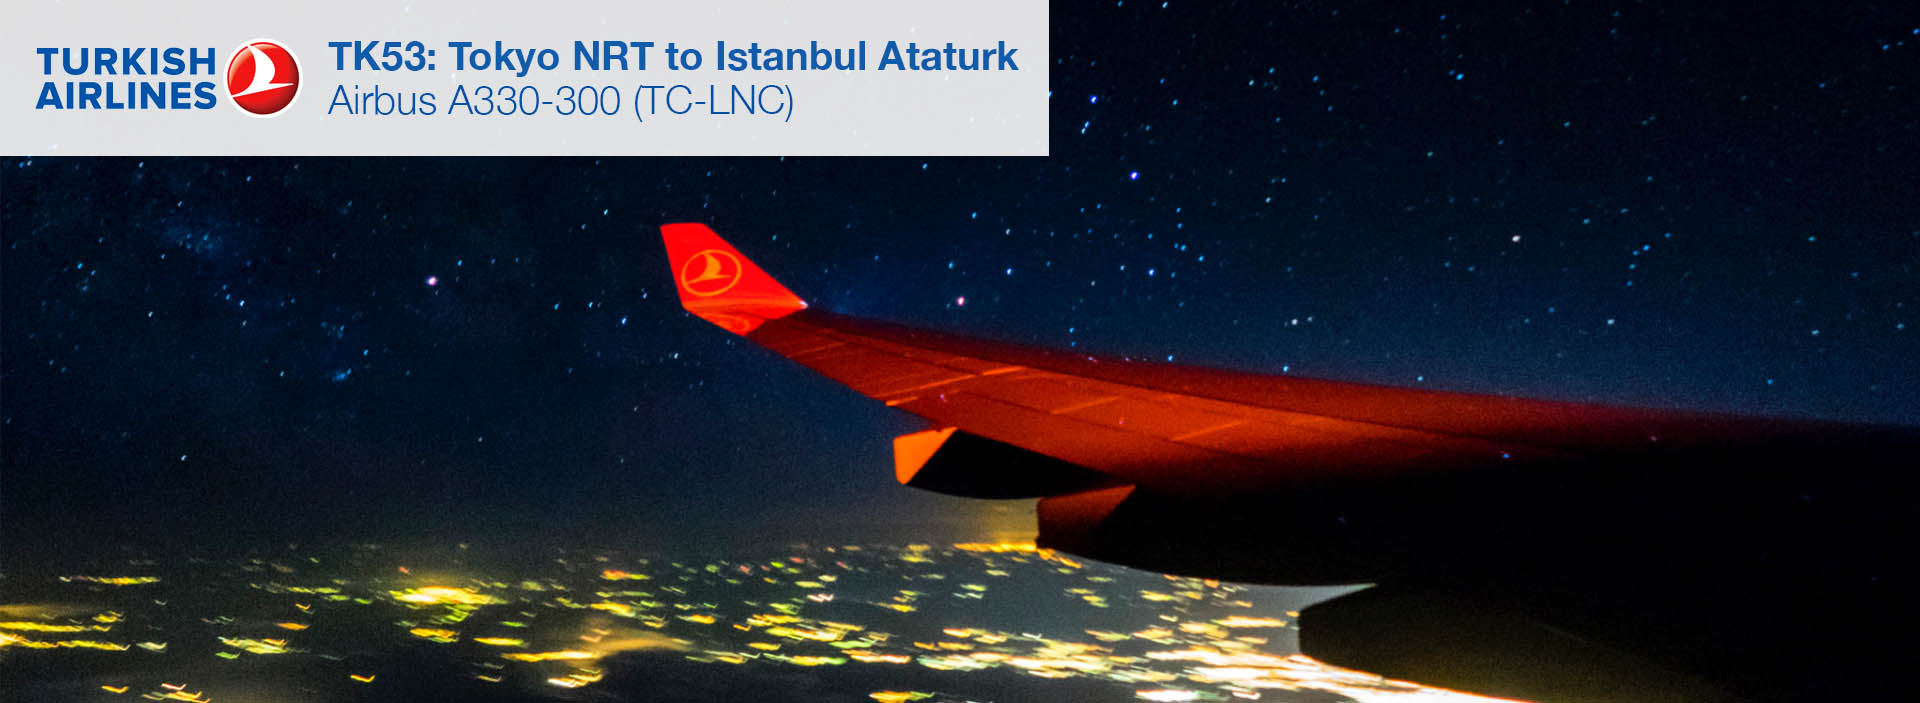 Review: Turkish Airlines A330-300 Economy Class from Tokyo Narita to Istanbul Ataturk